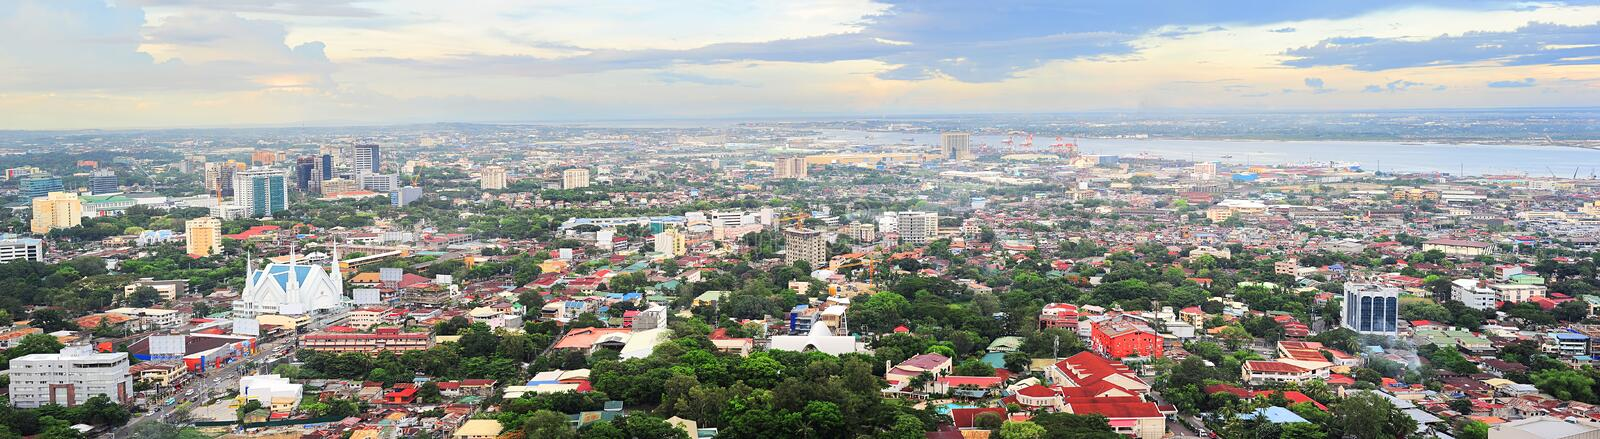 Metro Cebu at sunset. Panorama of Cebu city. Cebu is the Philippines second most significant metropolitan centre and main domestic shipping port royalty free stock images